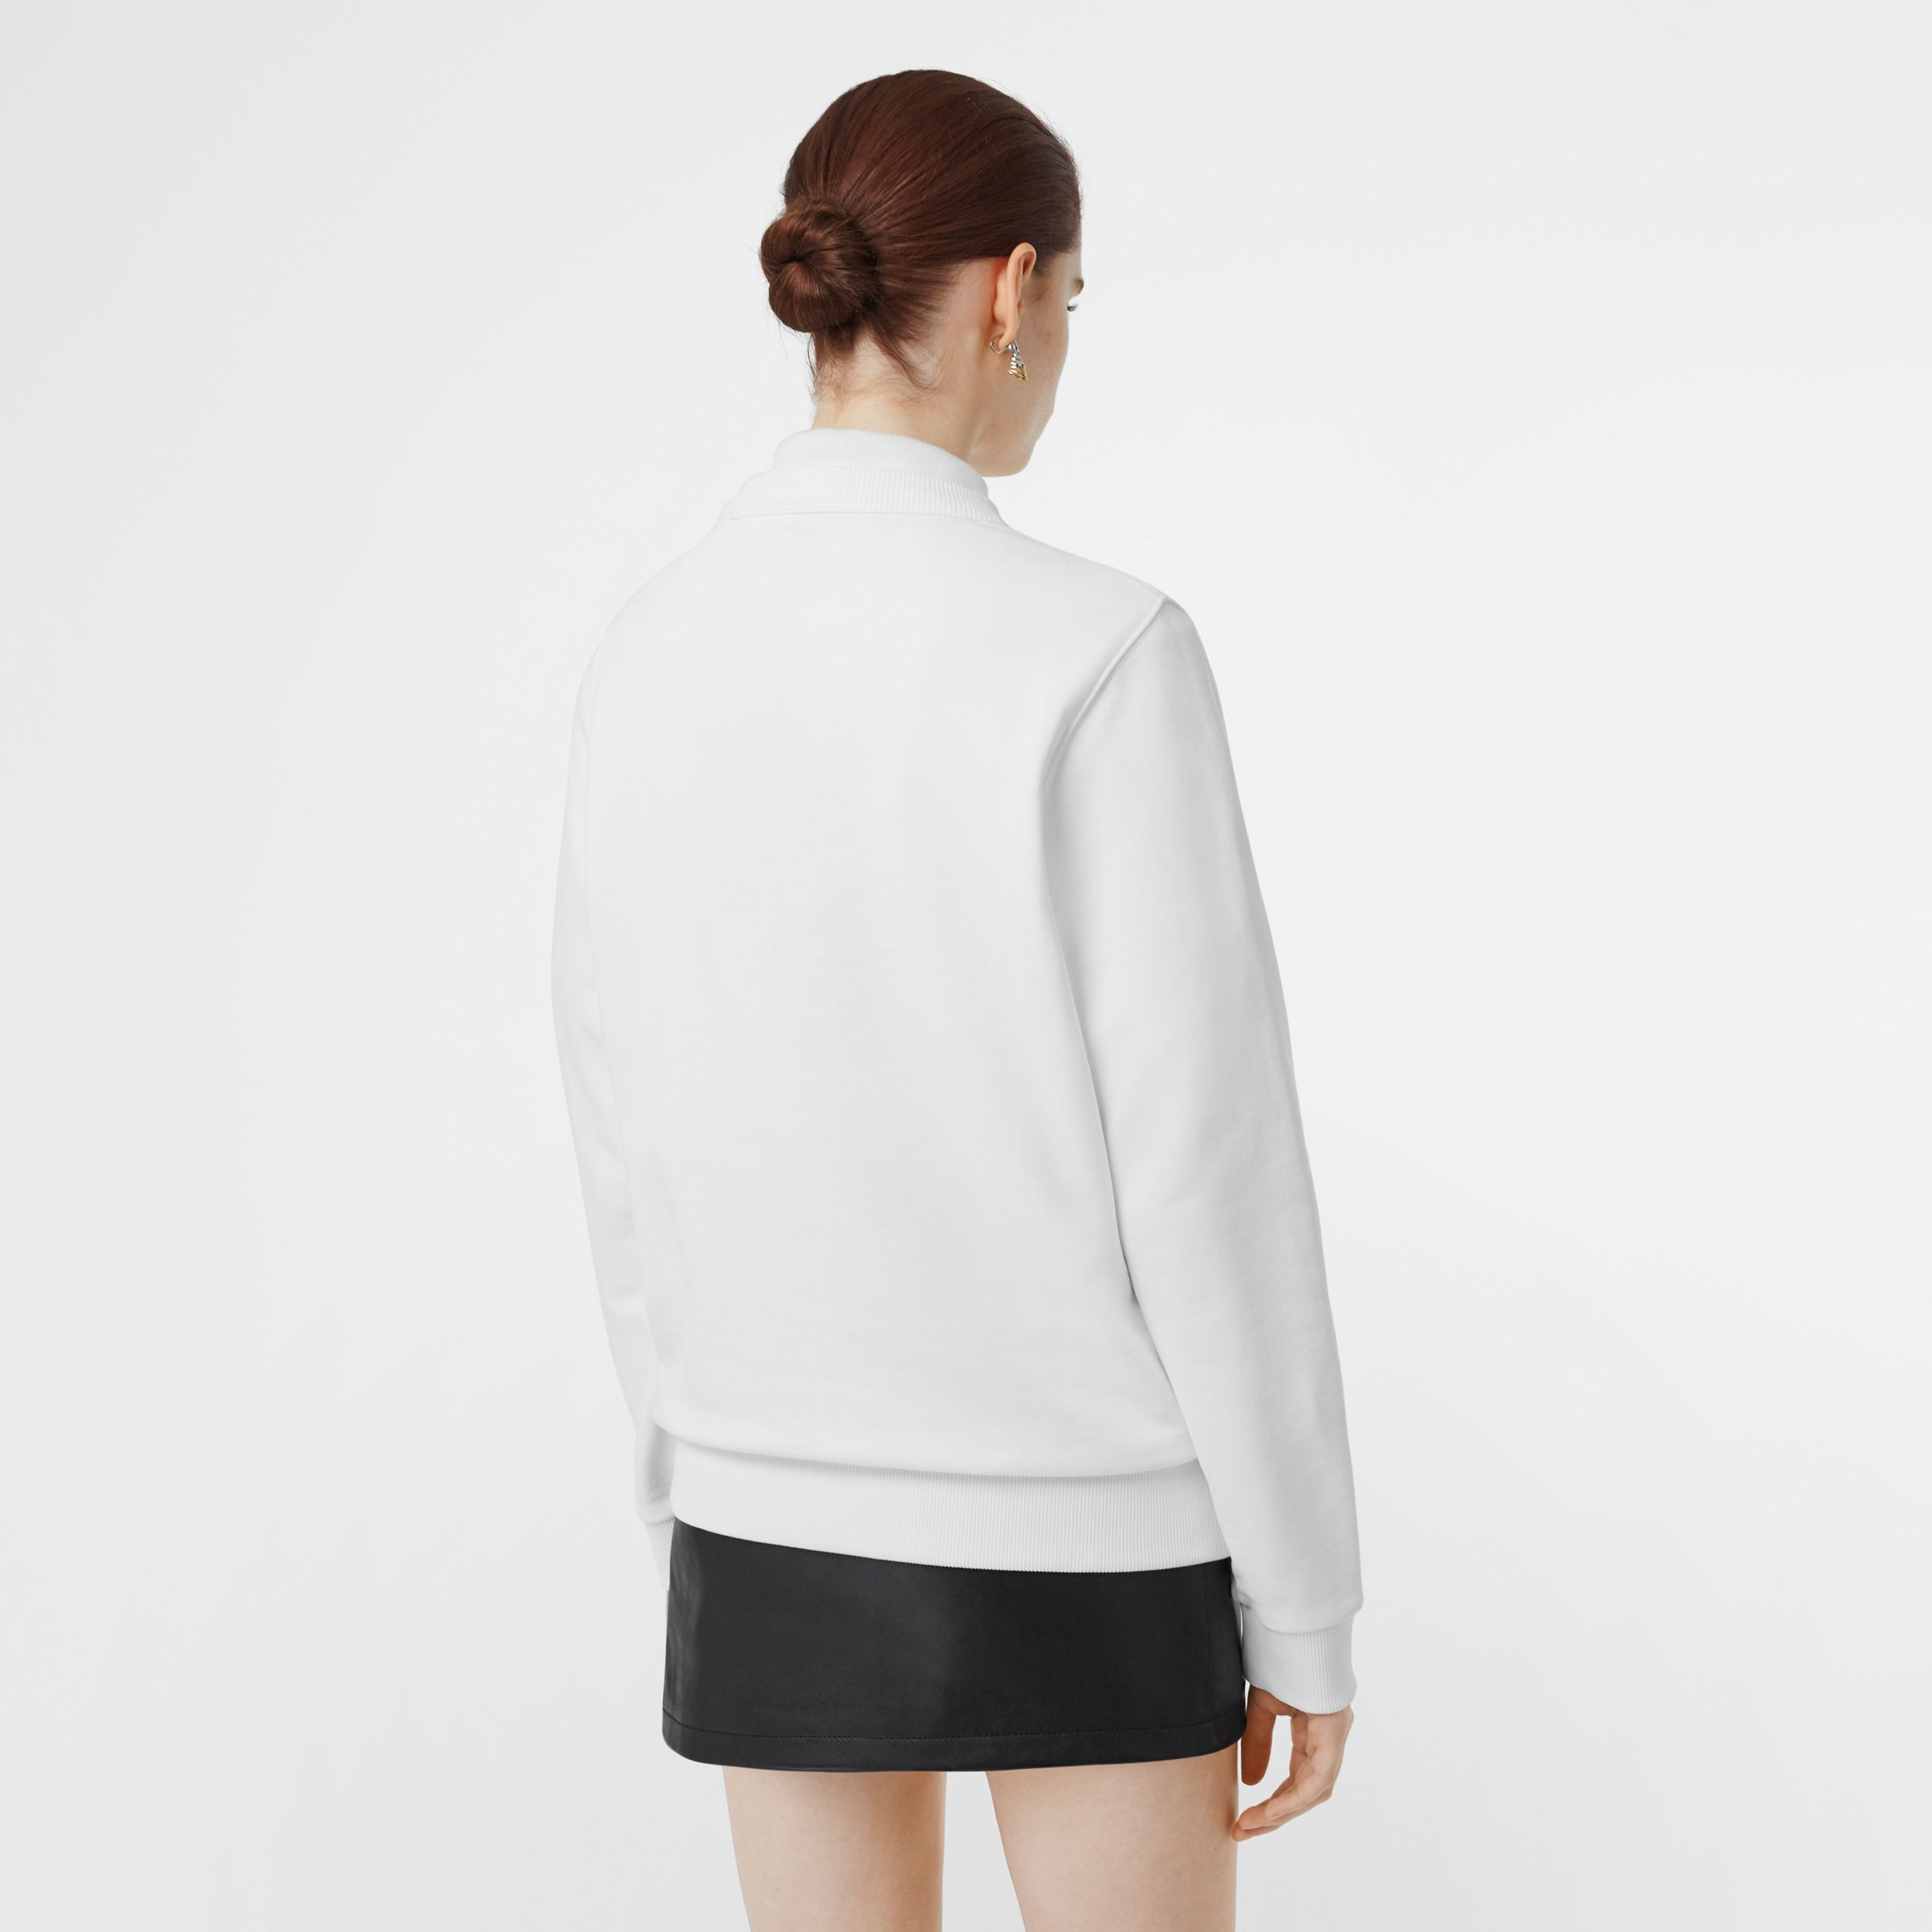 Logo Print Cotton Sweatshirt in White - Women | Burberry - 3